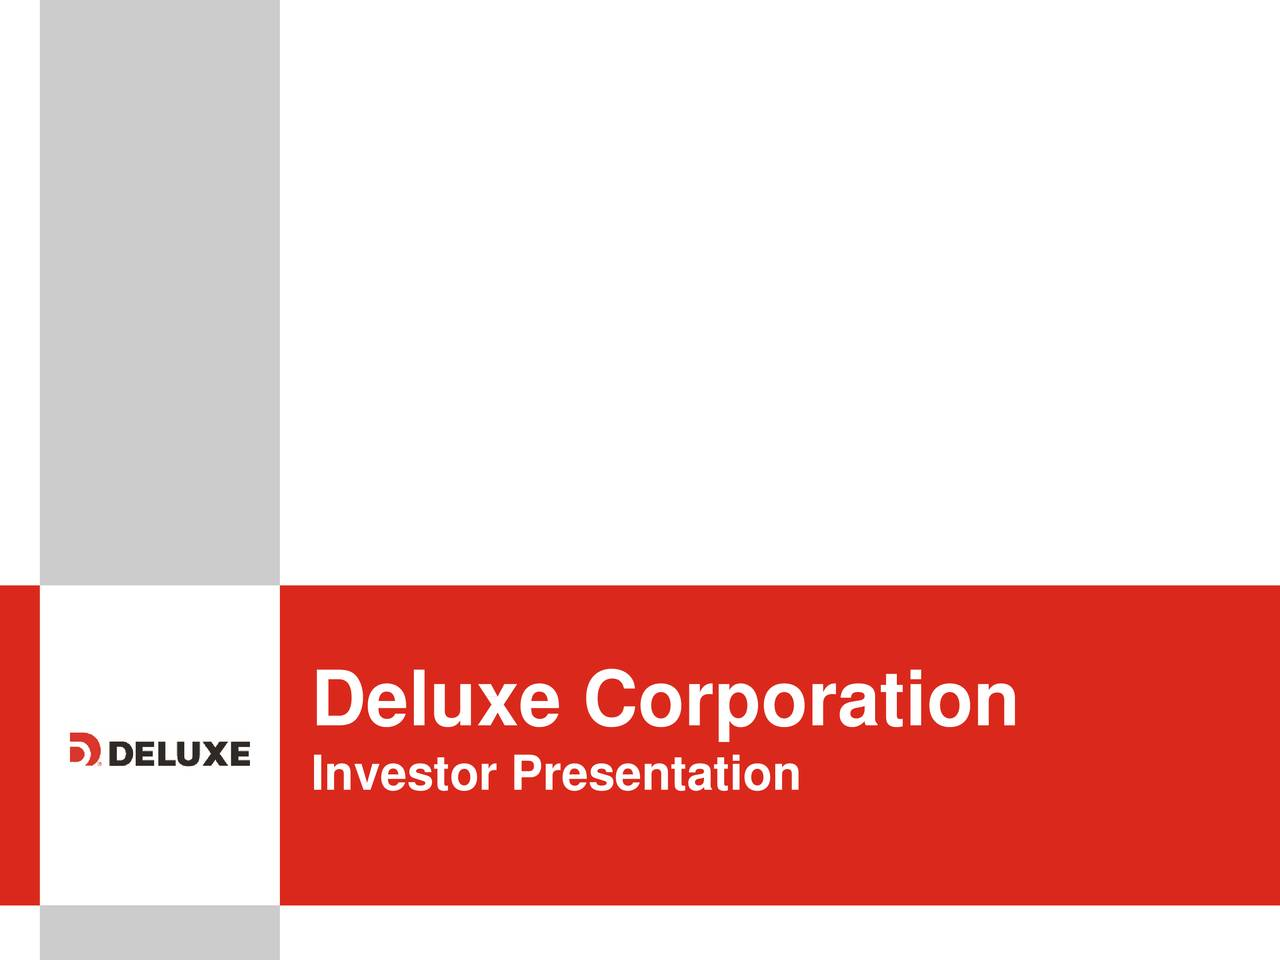 deluxe corporation 397 reviews from deluxe corporation employees about deluxe corporation  culture, salaries, benefits, work-life balance, management, job security, and more.